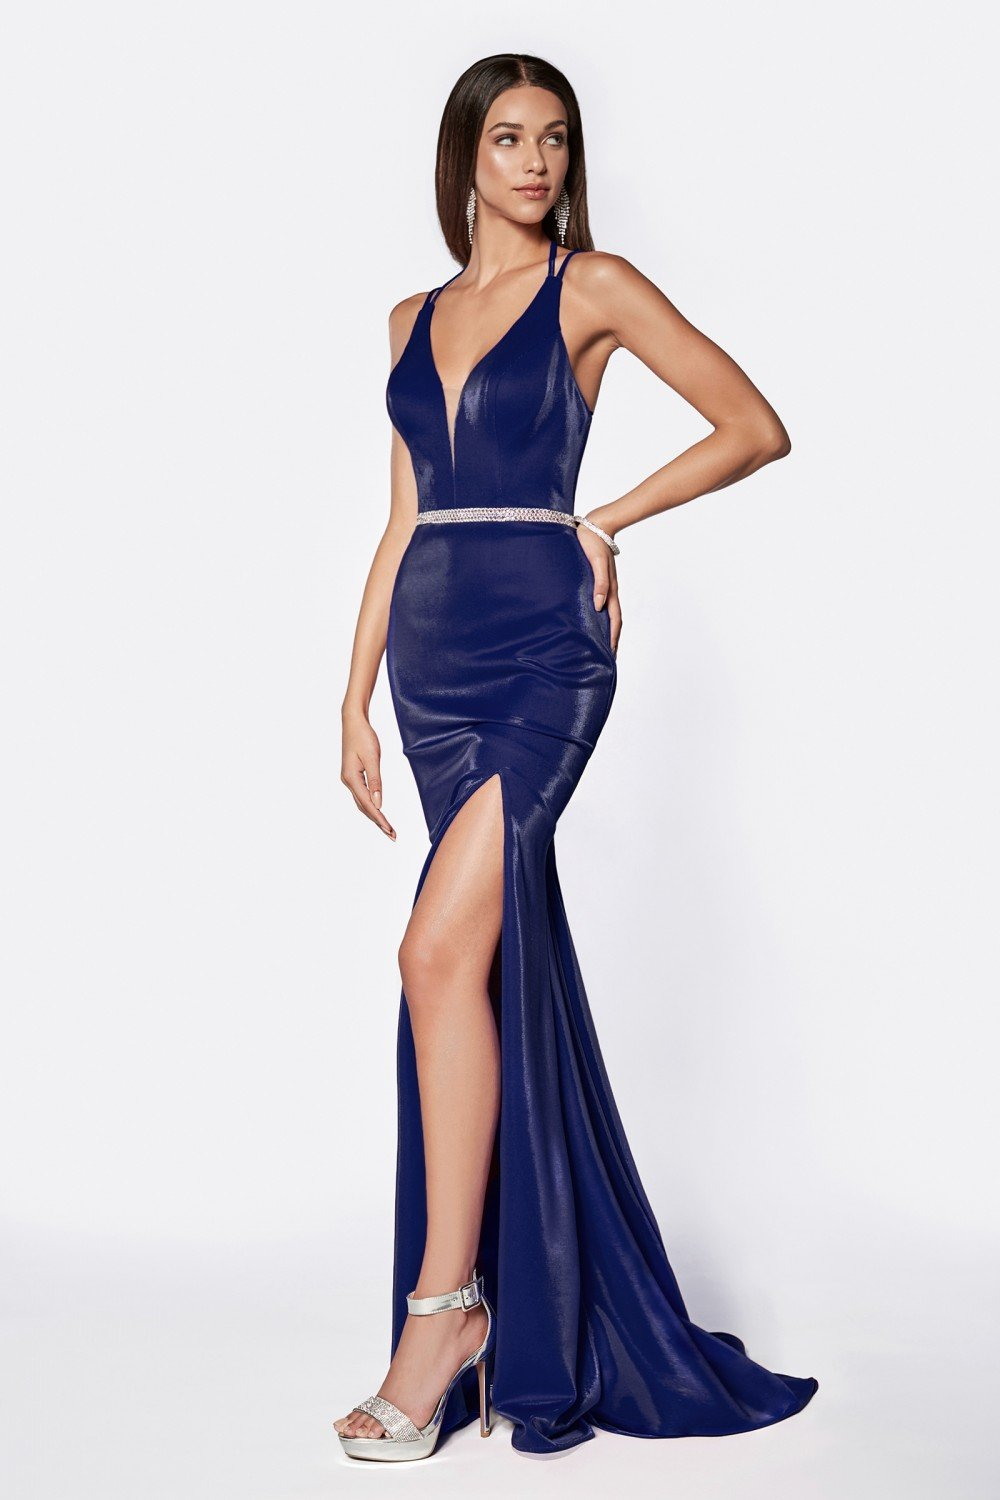 Cobalt Blue fitted deep plunging neckline gown with beaded belt and leg slit.